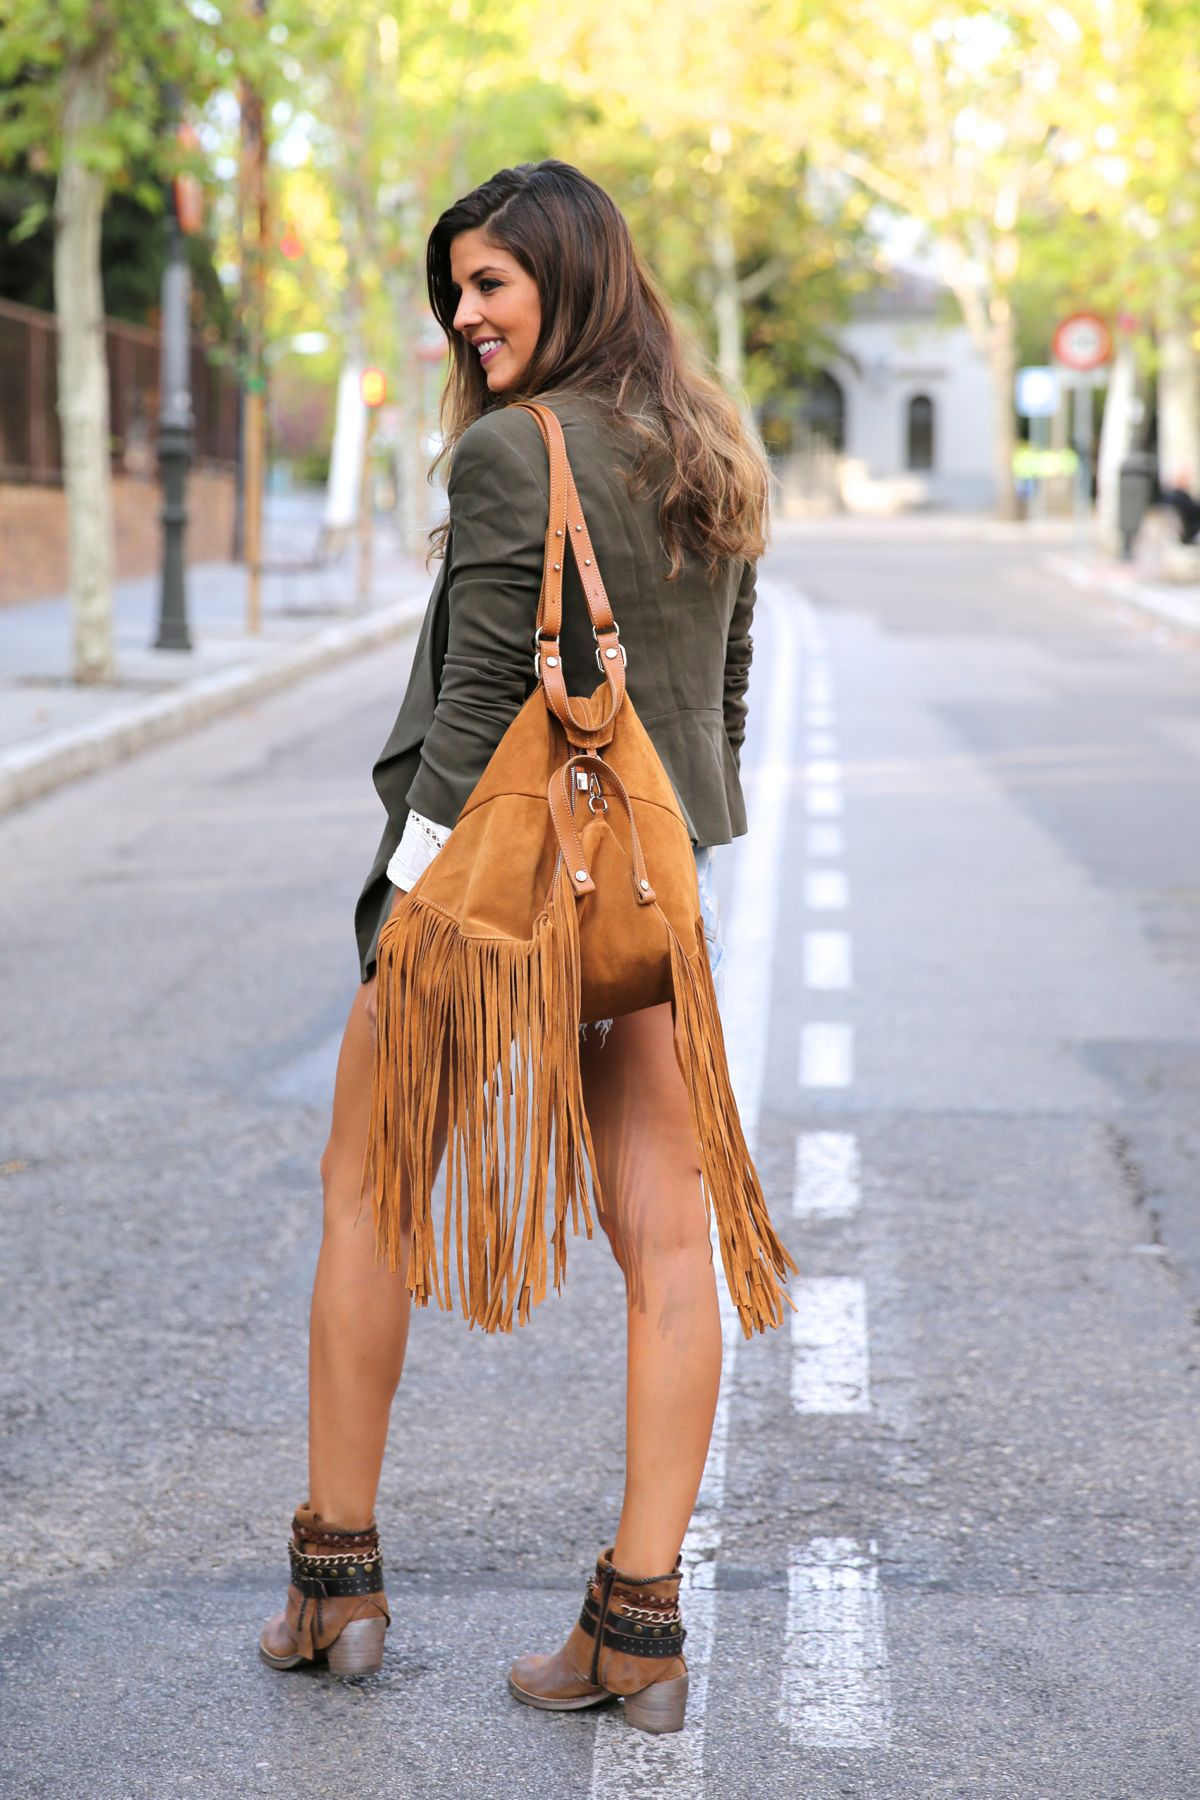 trendy_taste-look-outfit-street_style-ootd-blog-blogger-fashion_spain-moda_españa-boho-hippie-flecos-botines_camperos-cowboy_booties-mochila-backpack-blusa-camisa-denim-shorts-vaqueros-11